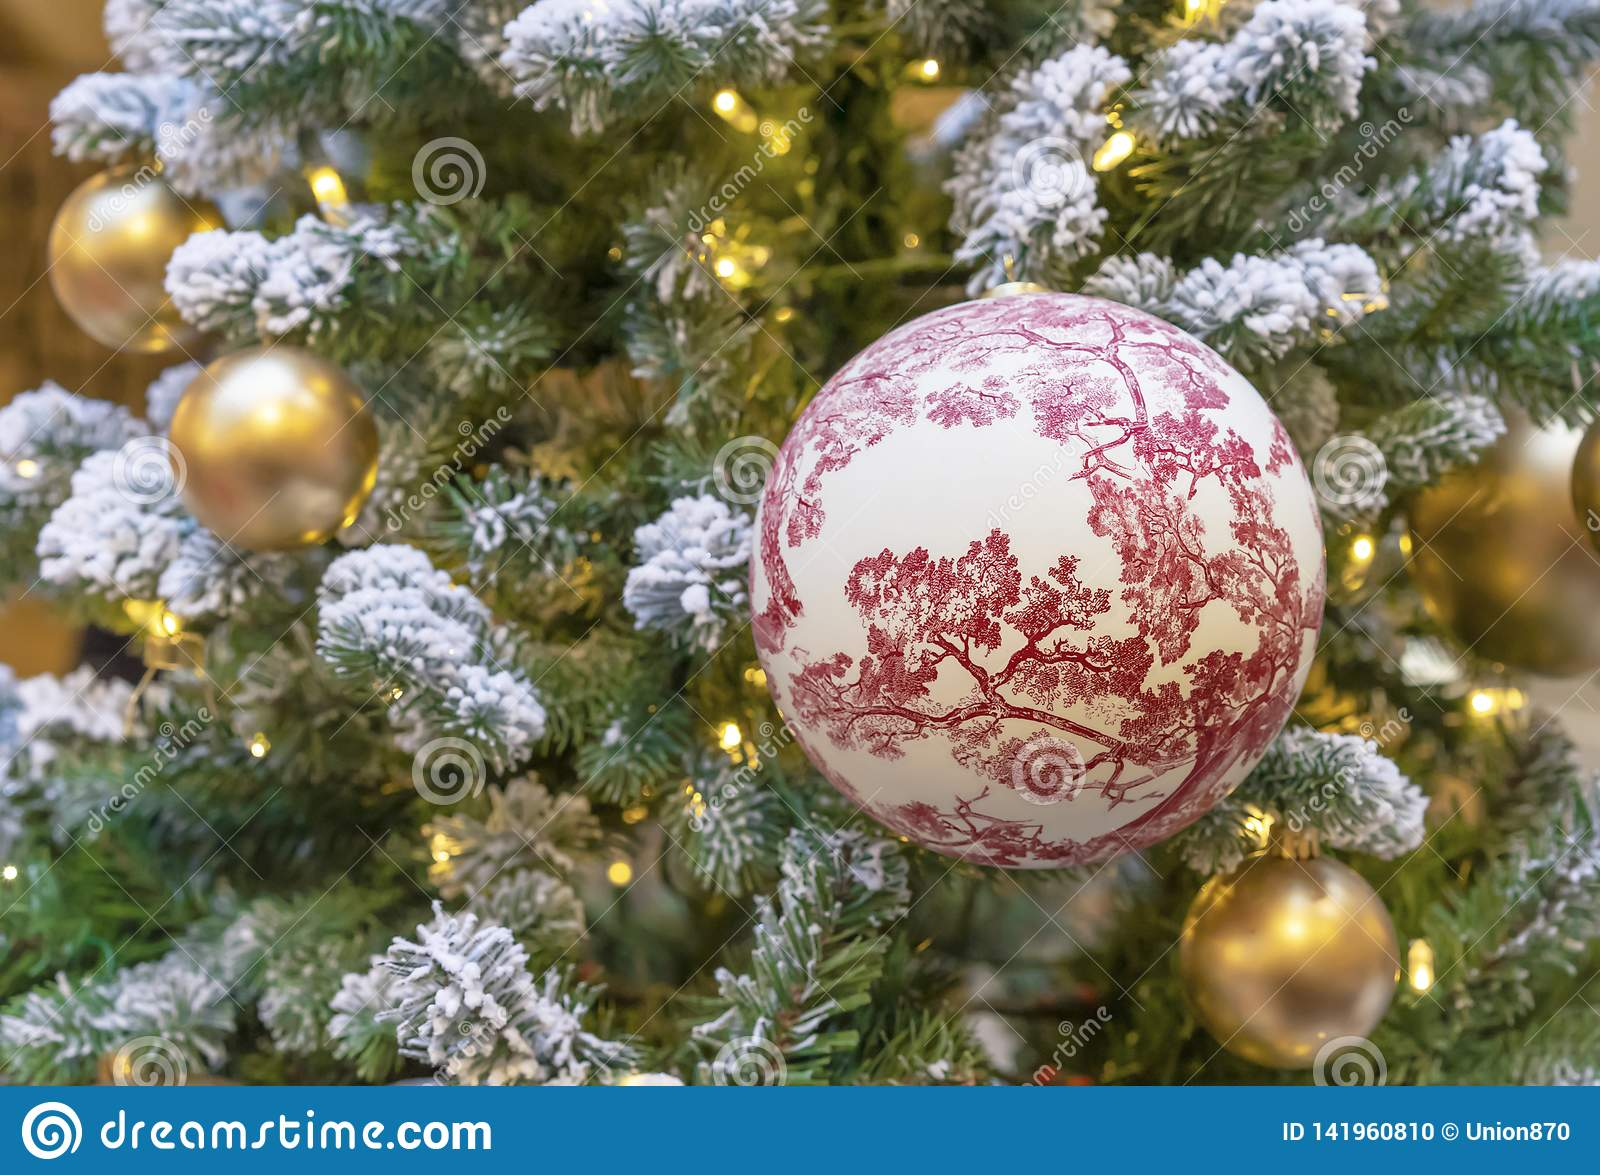 Large ball with floral ornaments on the Christmas tree